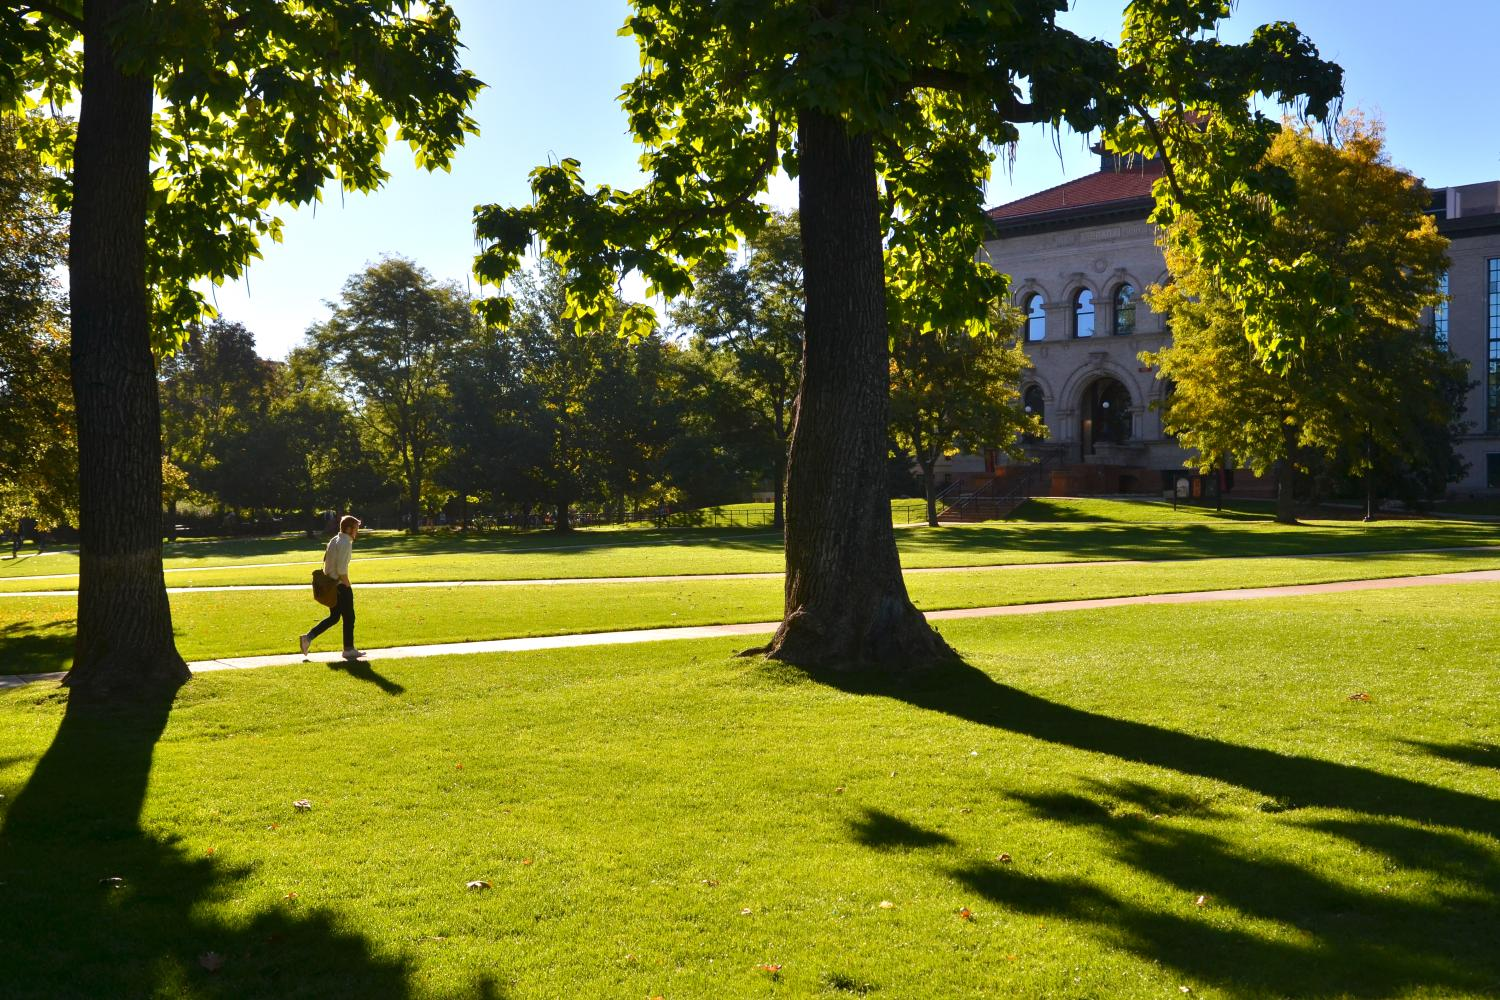 The University of Colorado Boulder has one of the most beautiful campuses in America